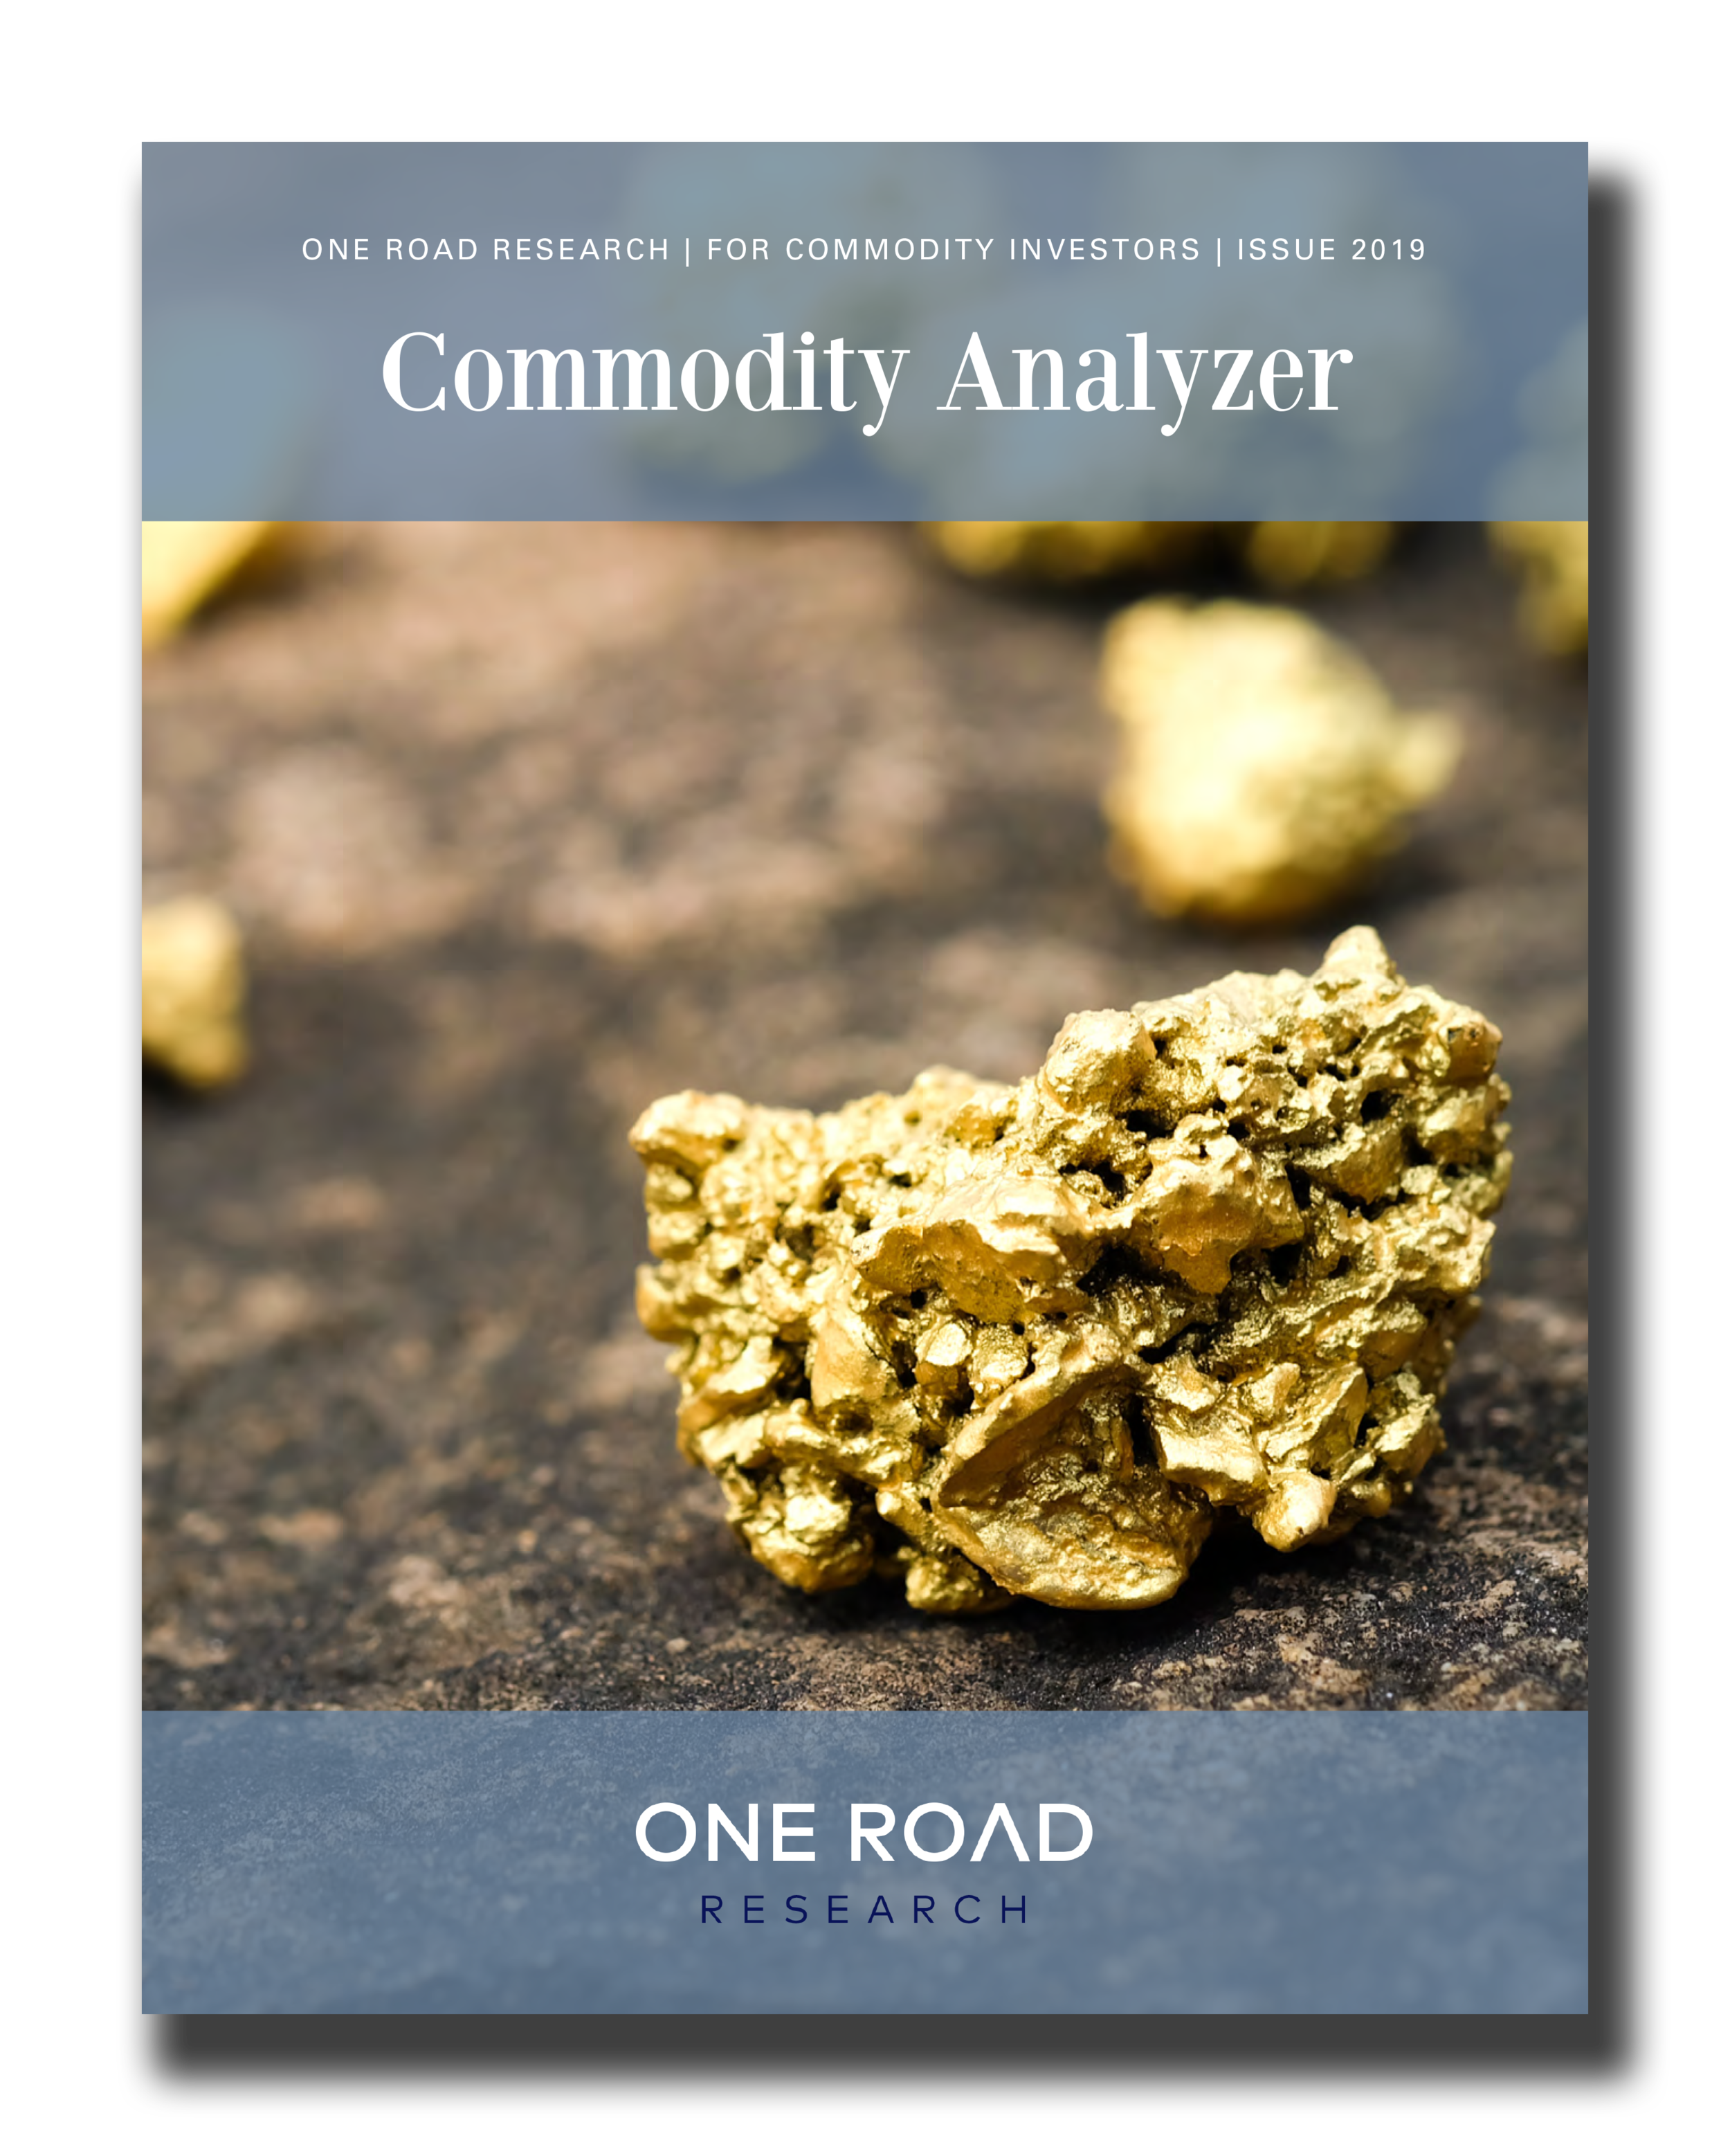 commodity-analyzer-report-2019-1.png